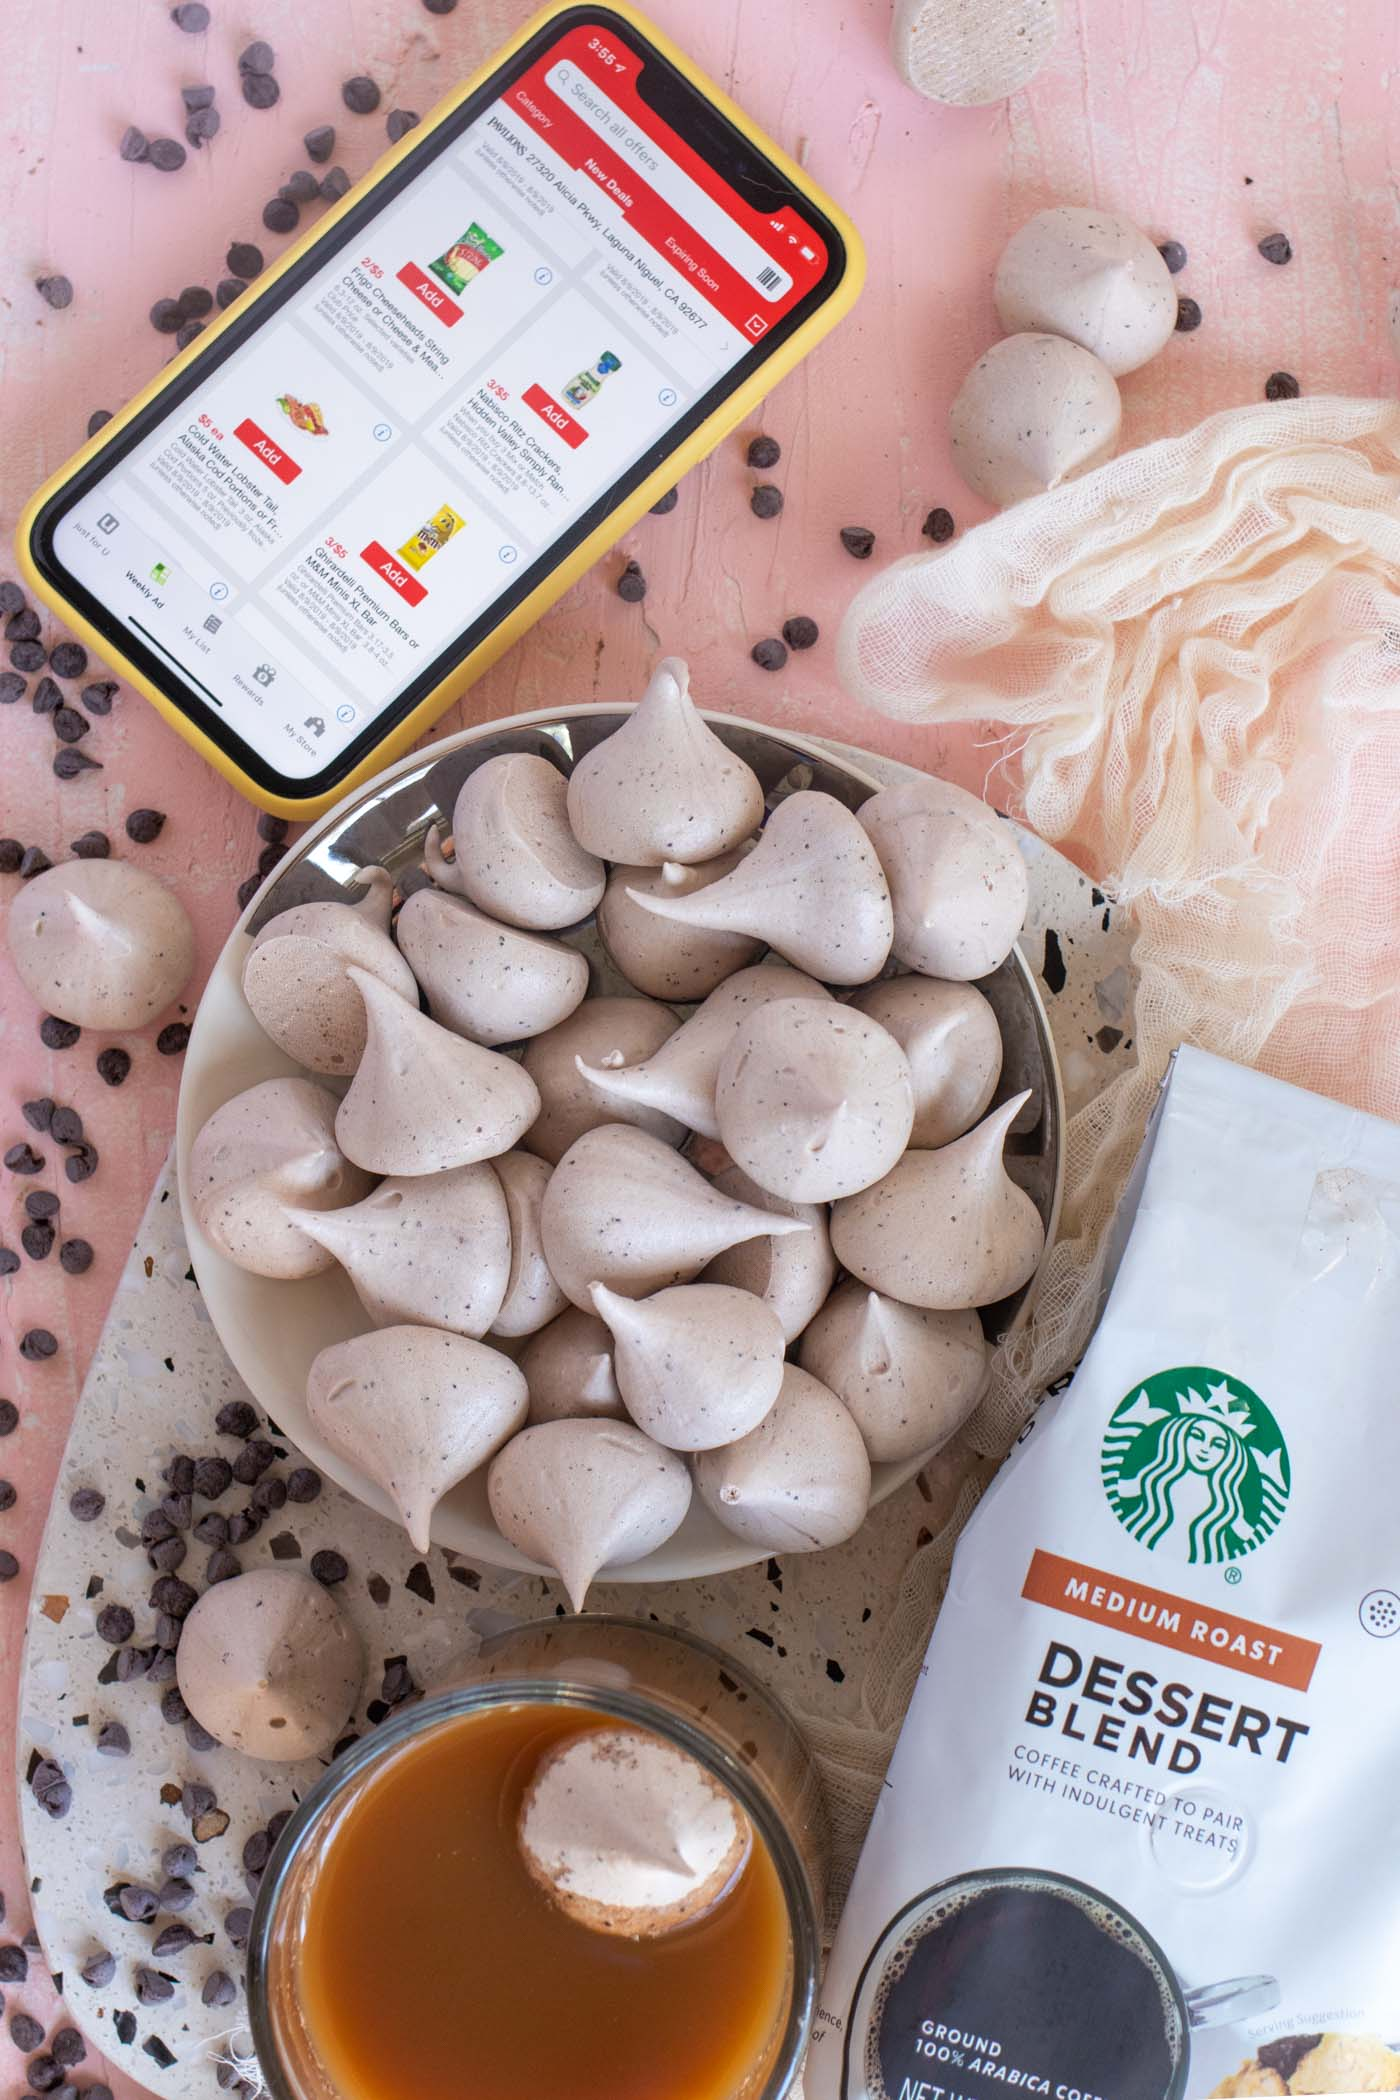 Easy Mocha Meringues // Make easy coffee-flavored meringues with Starbucks Dessert Blend ground coffee from Pavilions! #ad These homemade meringues are flavored with chocolate and fresh ground coffee for a perfect balance of flavors that compliment your morning cup of coffee perfectly! #coffee #meringue #chocolate #easyrecipes #easydessert #5ingredientrecipes #coffeelovers #coffeeaddict